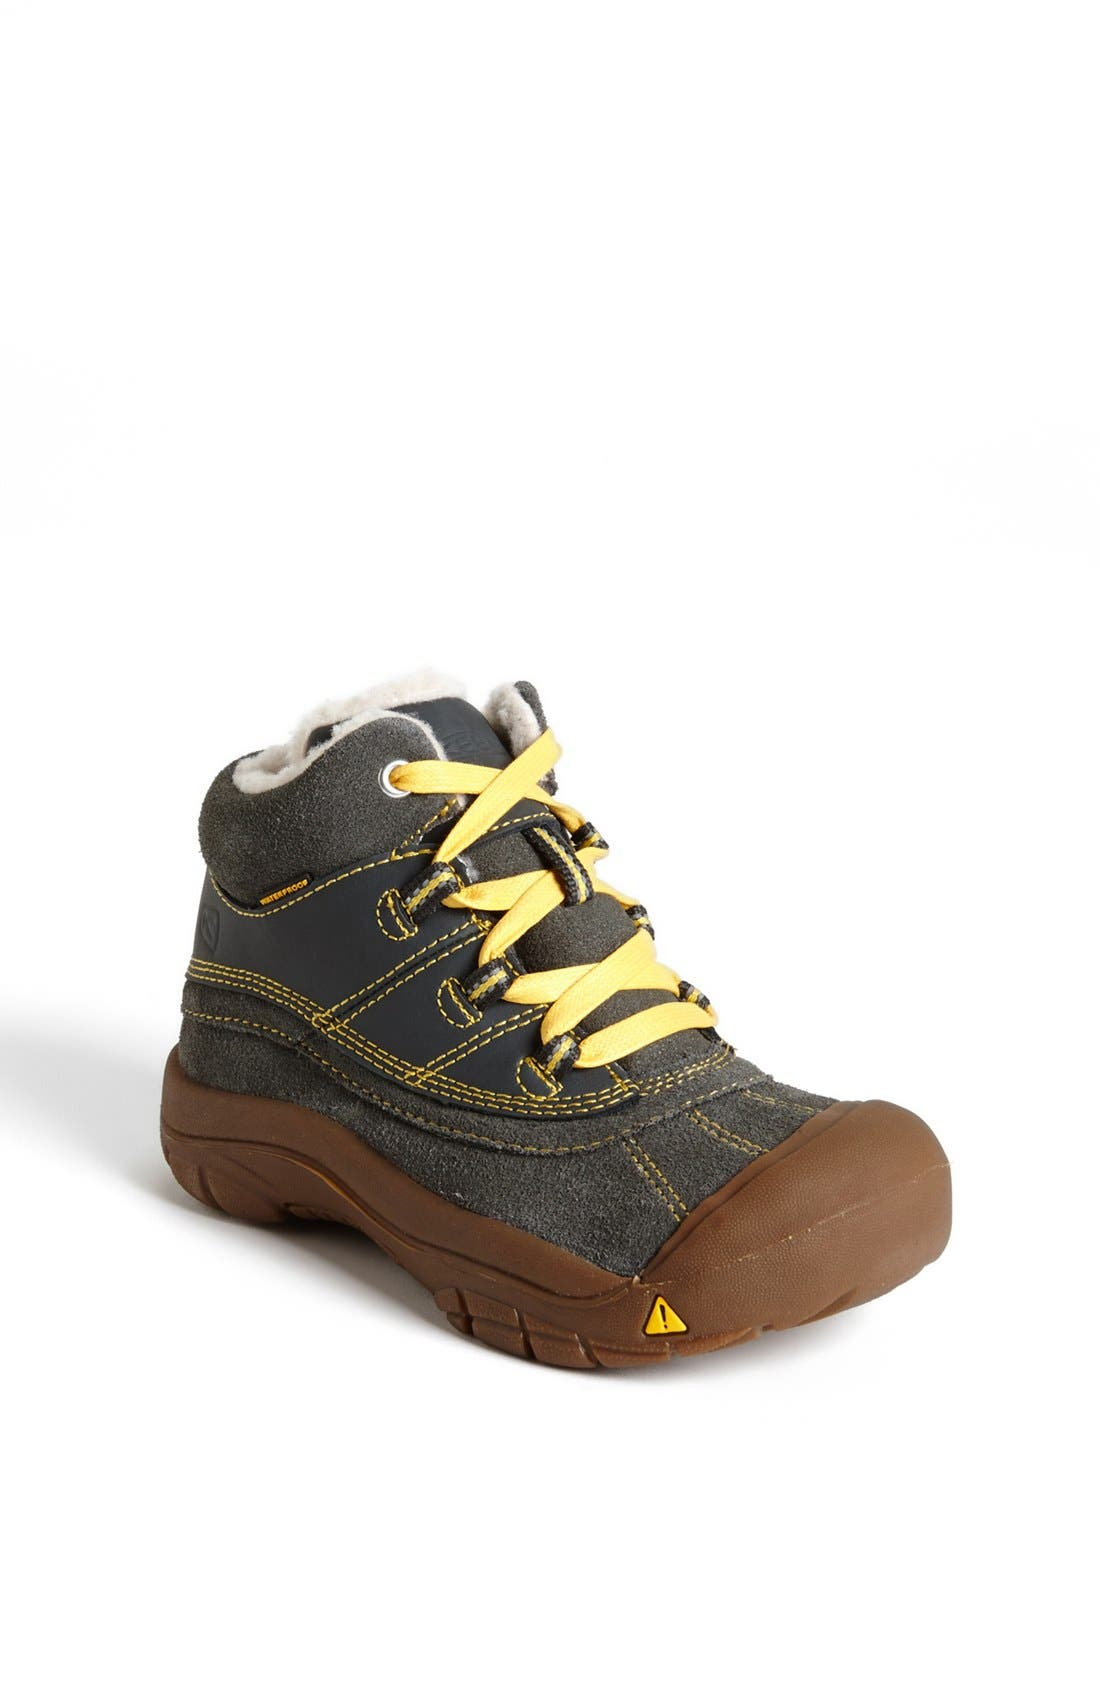 Main Image - Keen 'Brady' Waterproof Boot (Toddler, Little Kid & Big Kid)